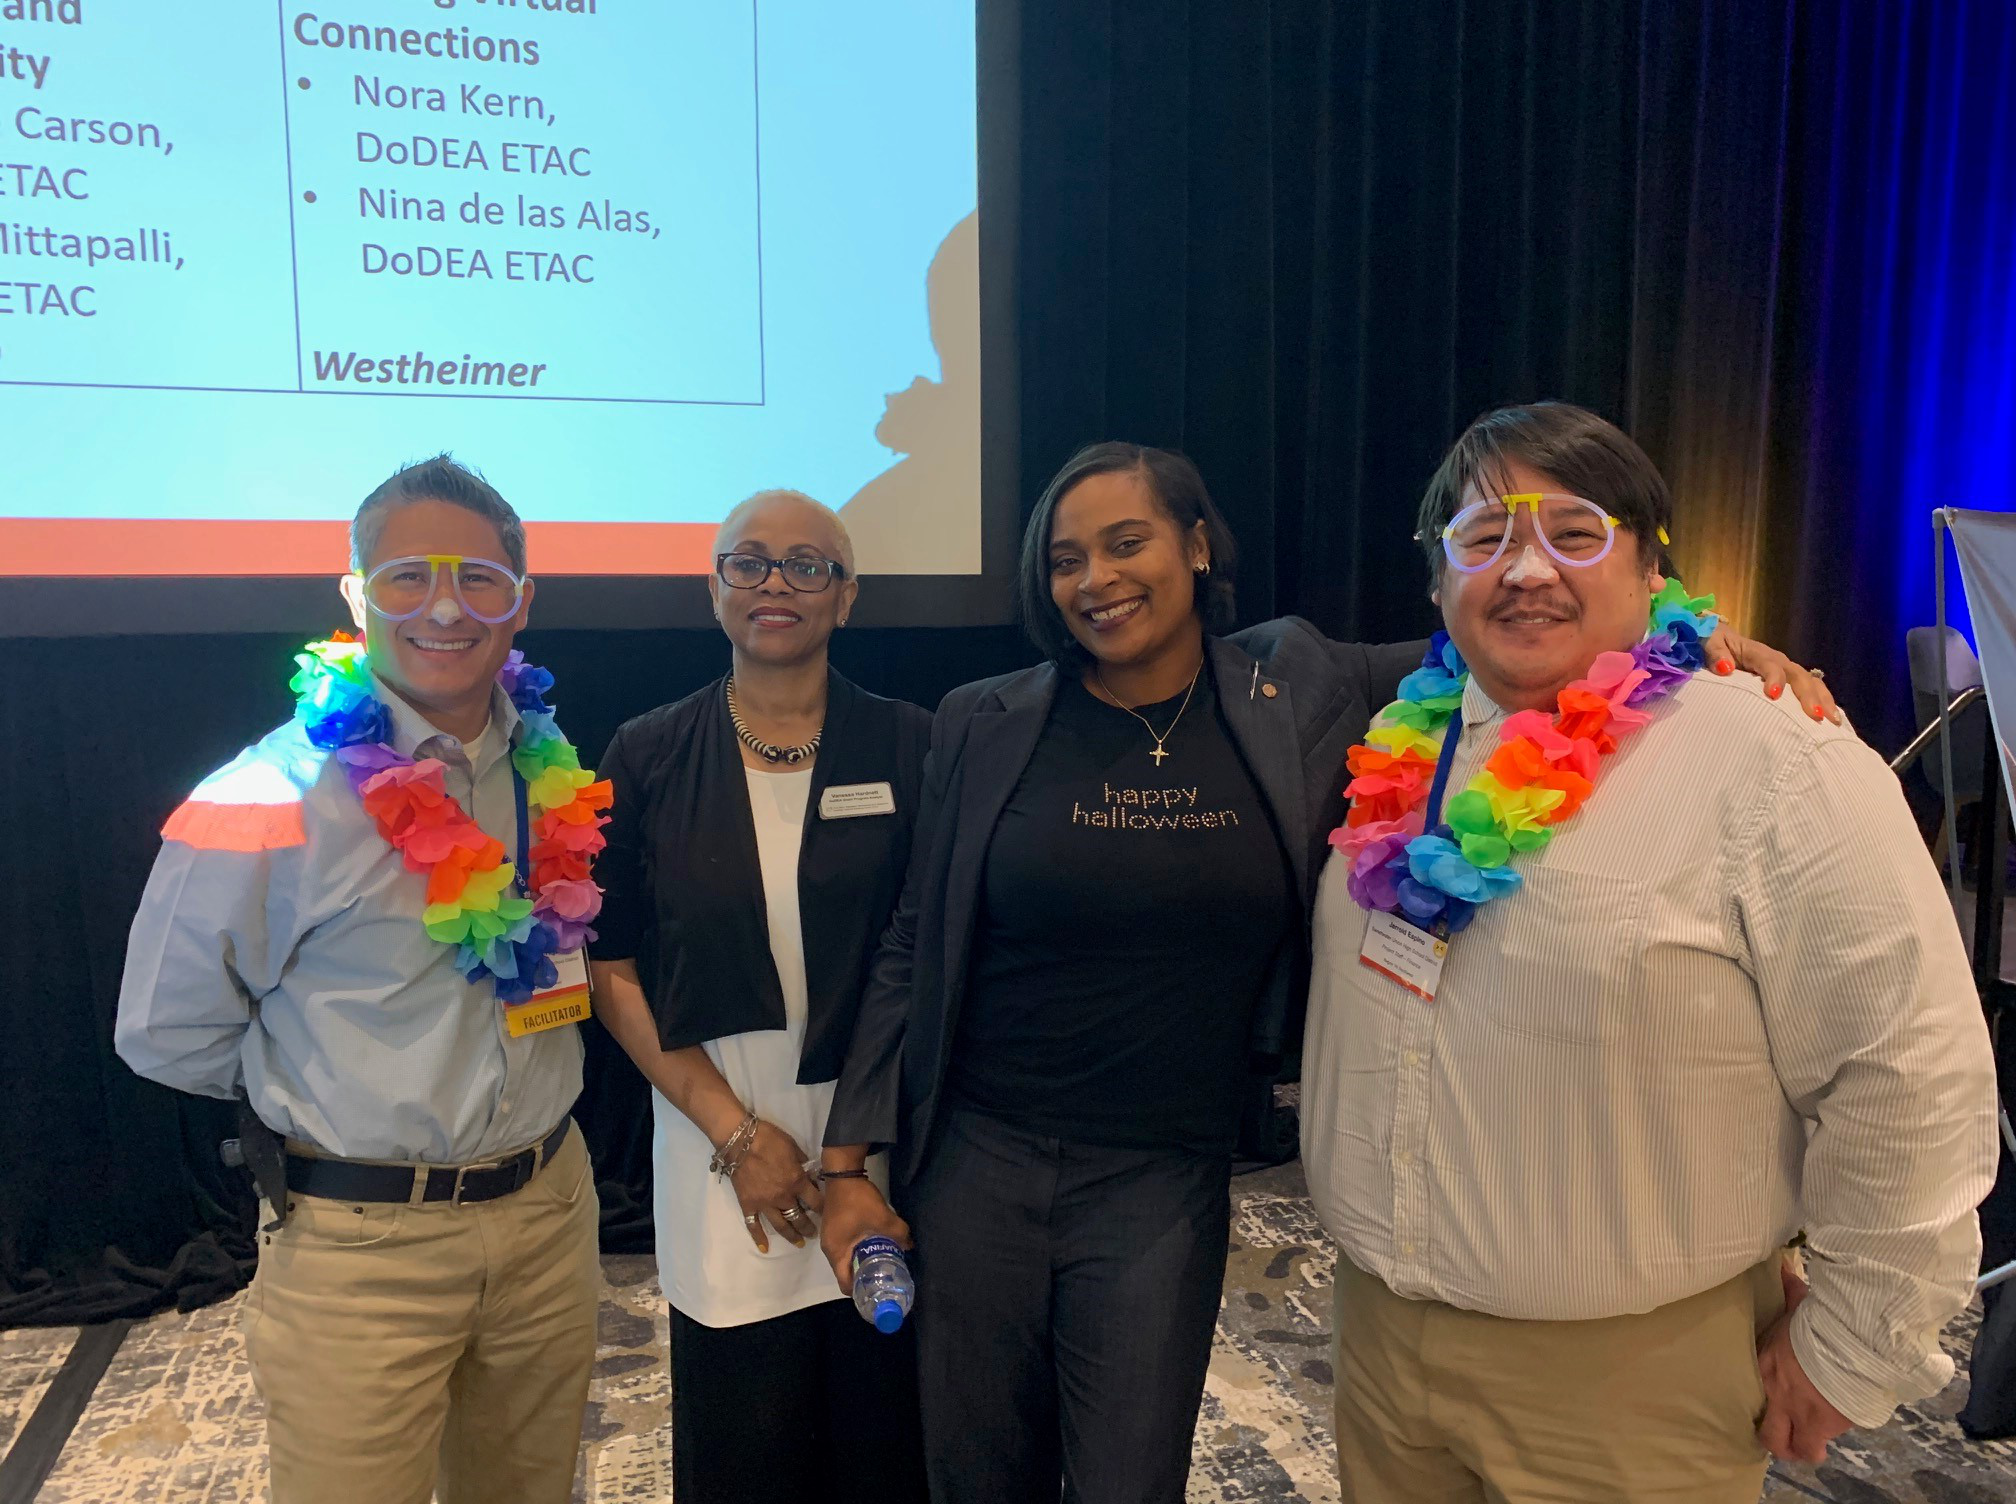 Picture of DoDEA and Grantee teams from 2019 Community of Practice Meeting